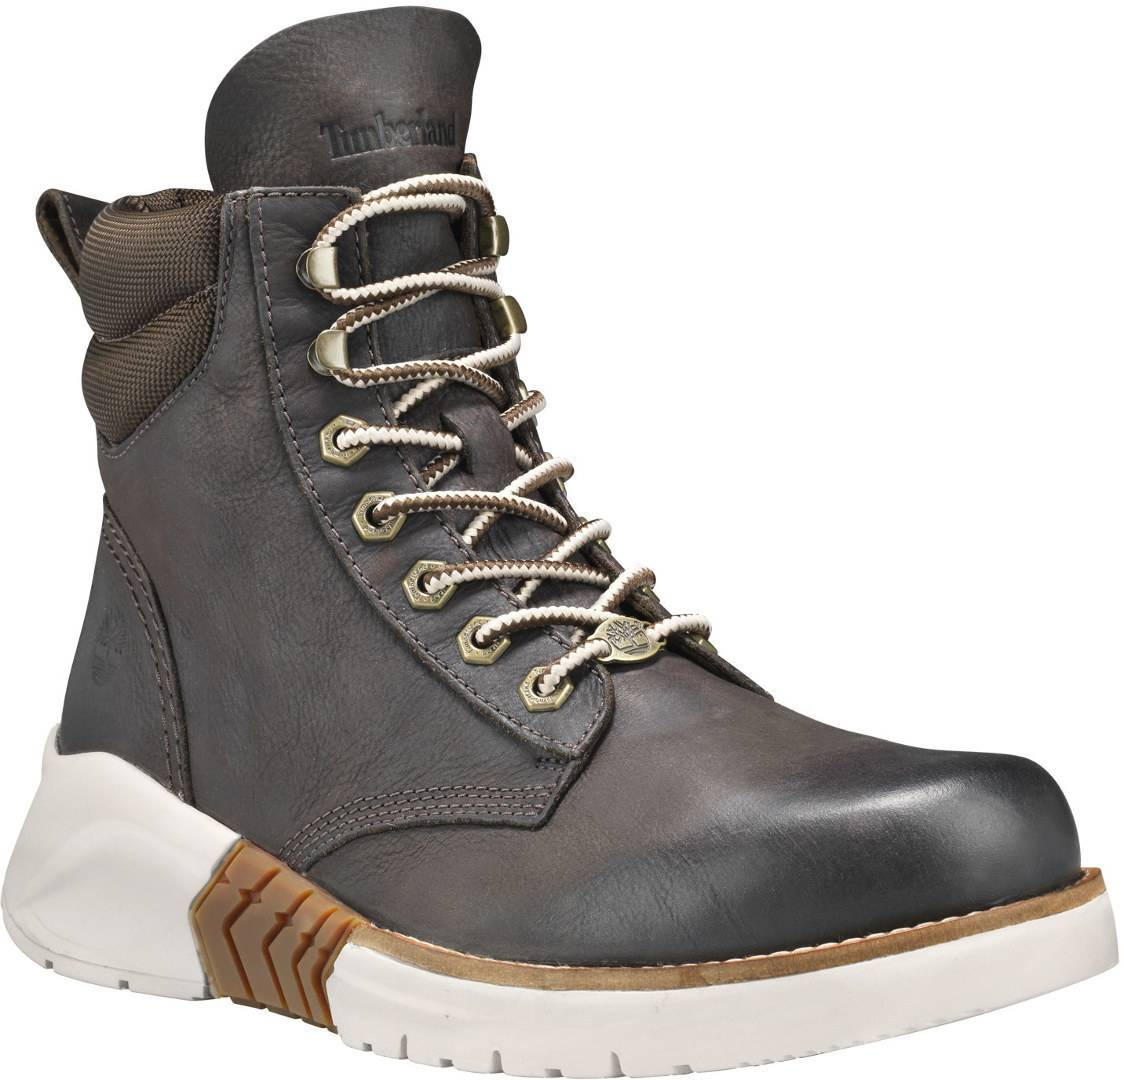 Timberland MTCR Plain Toe Bottes Brun taille : 41